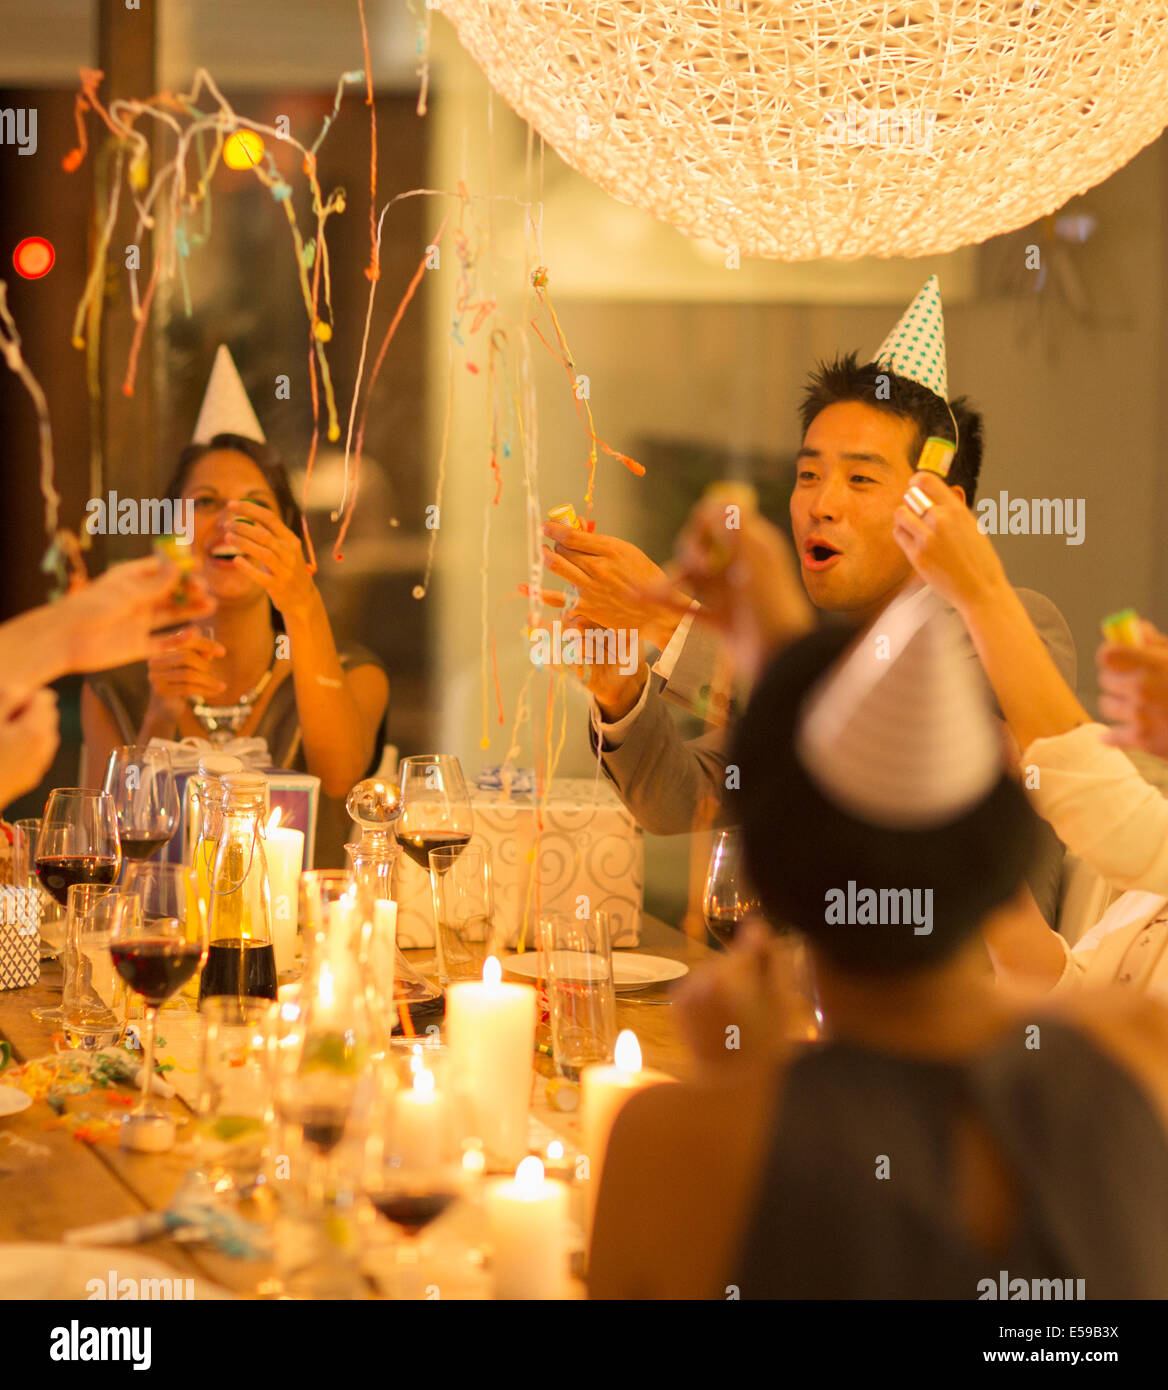 Friends celebrating at party - Stock Image